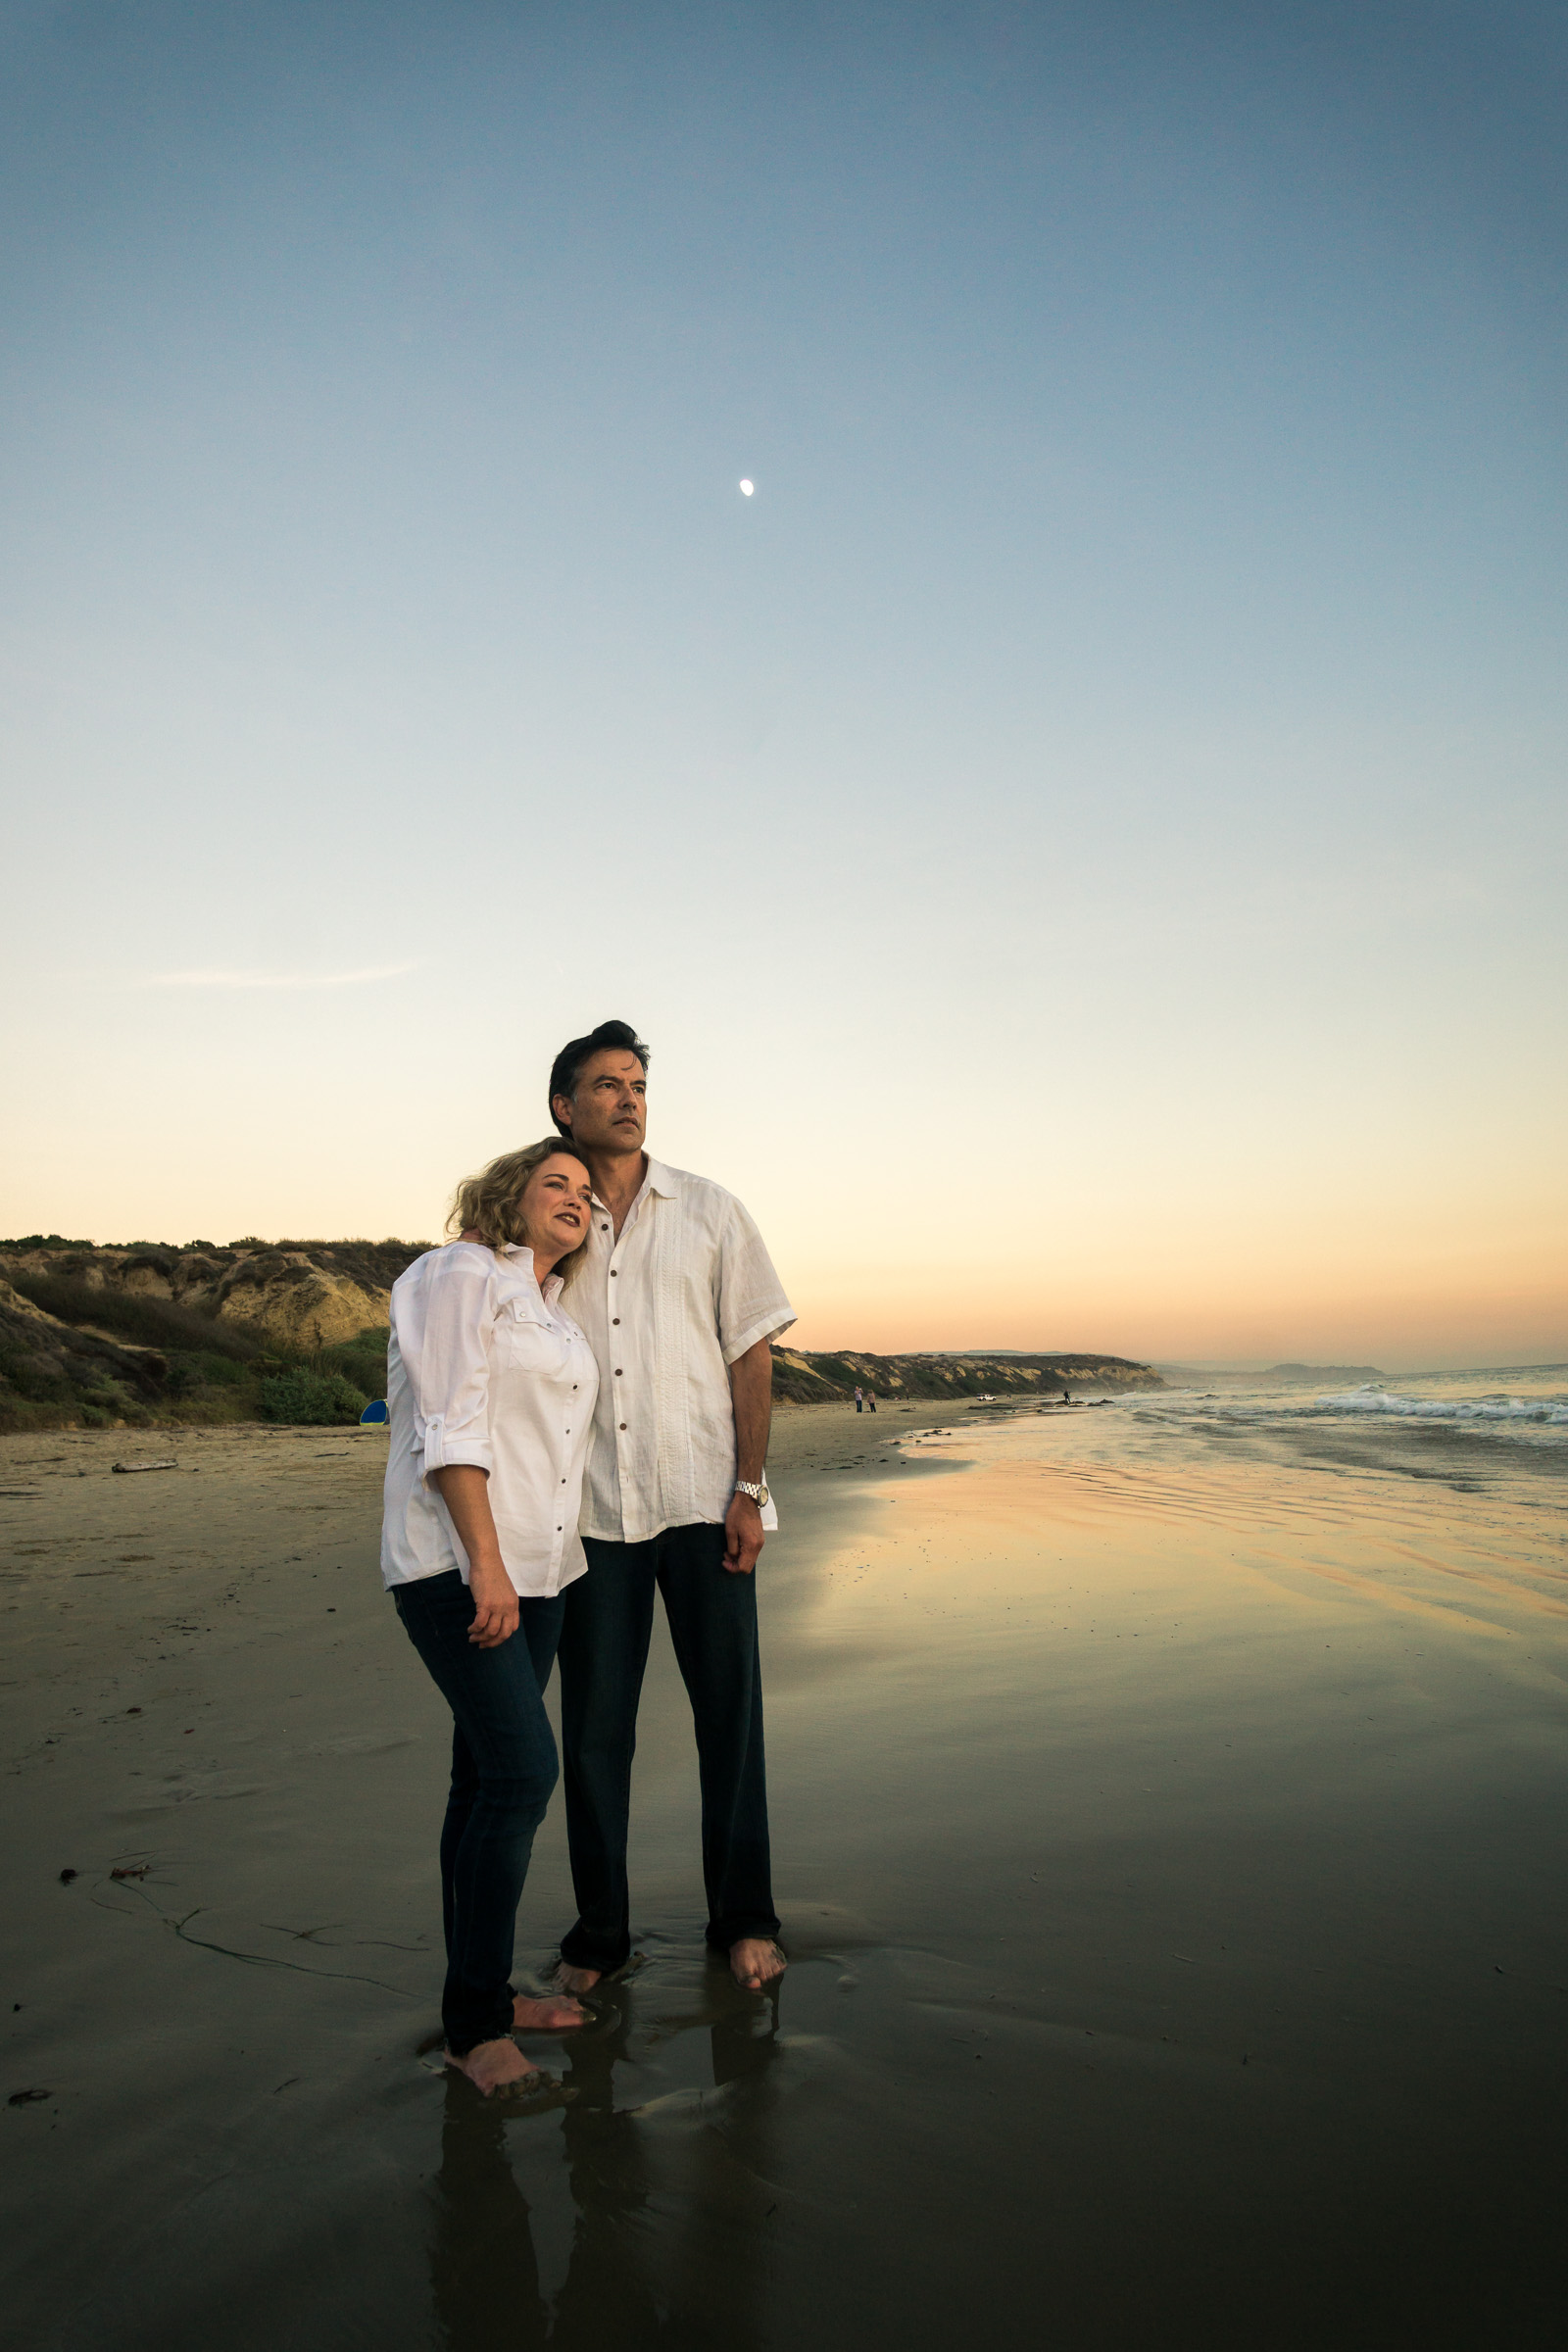 Family portraits of husband and wife with a  glassy seashore while enjoying the sunset together during Golden hour at Crystal Cove State Beach in Newport